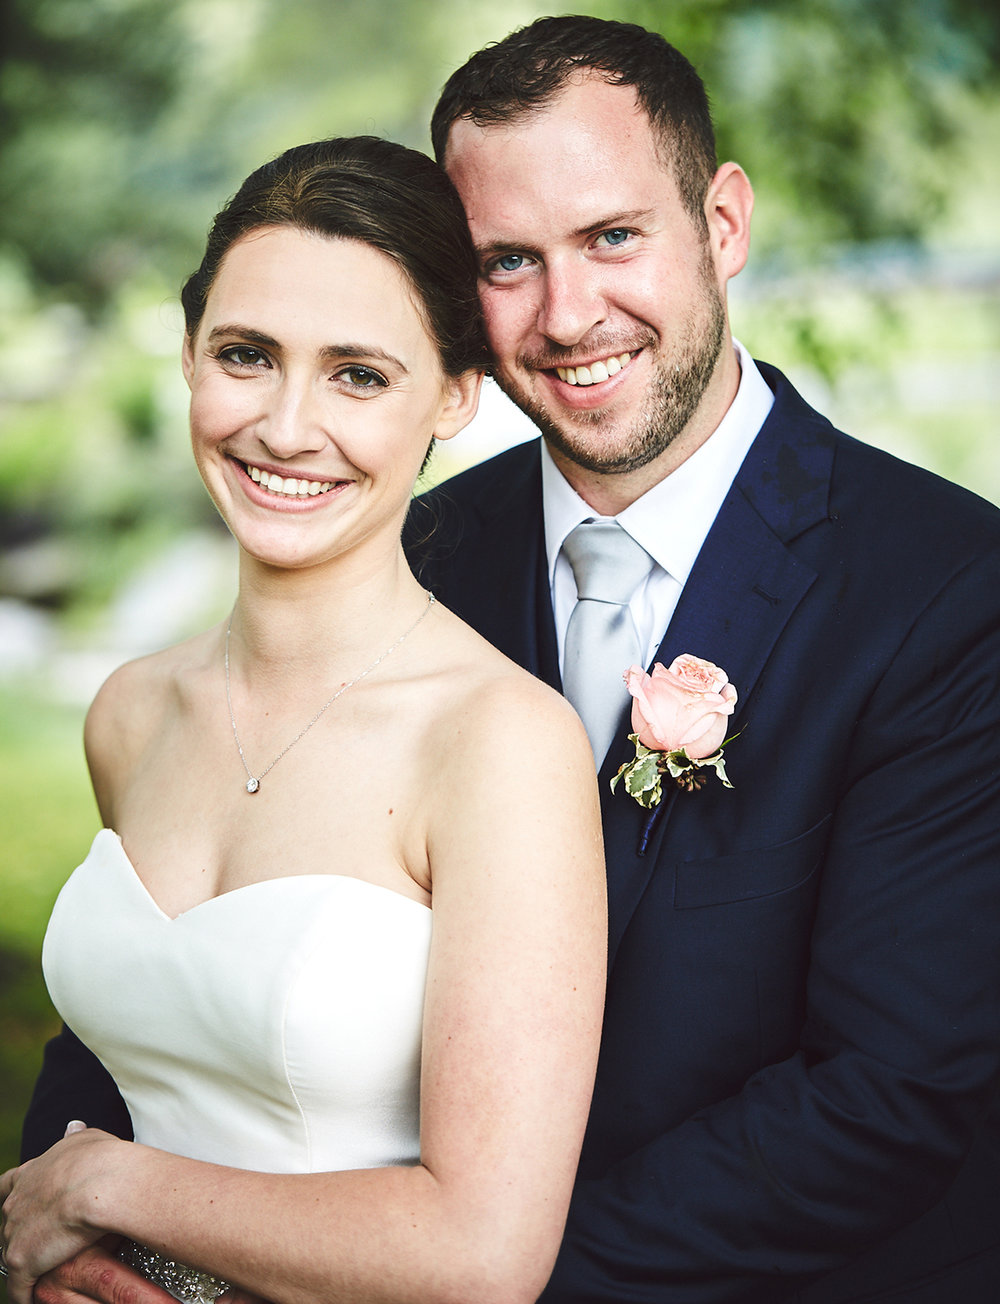 180714_HolidayValleyLodgeWeddingPhotography_By_BriJohnsonWeddings_0103.jpg